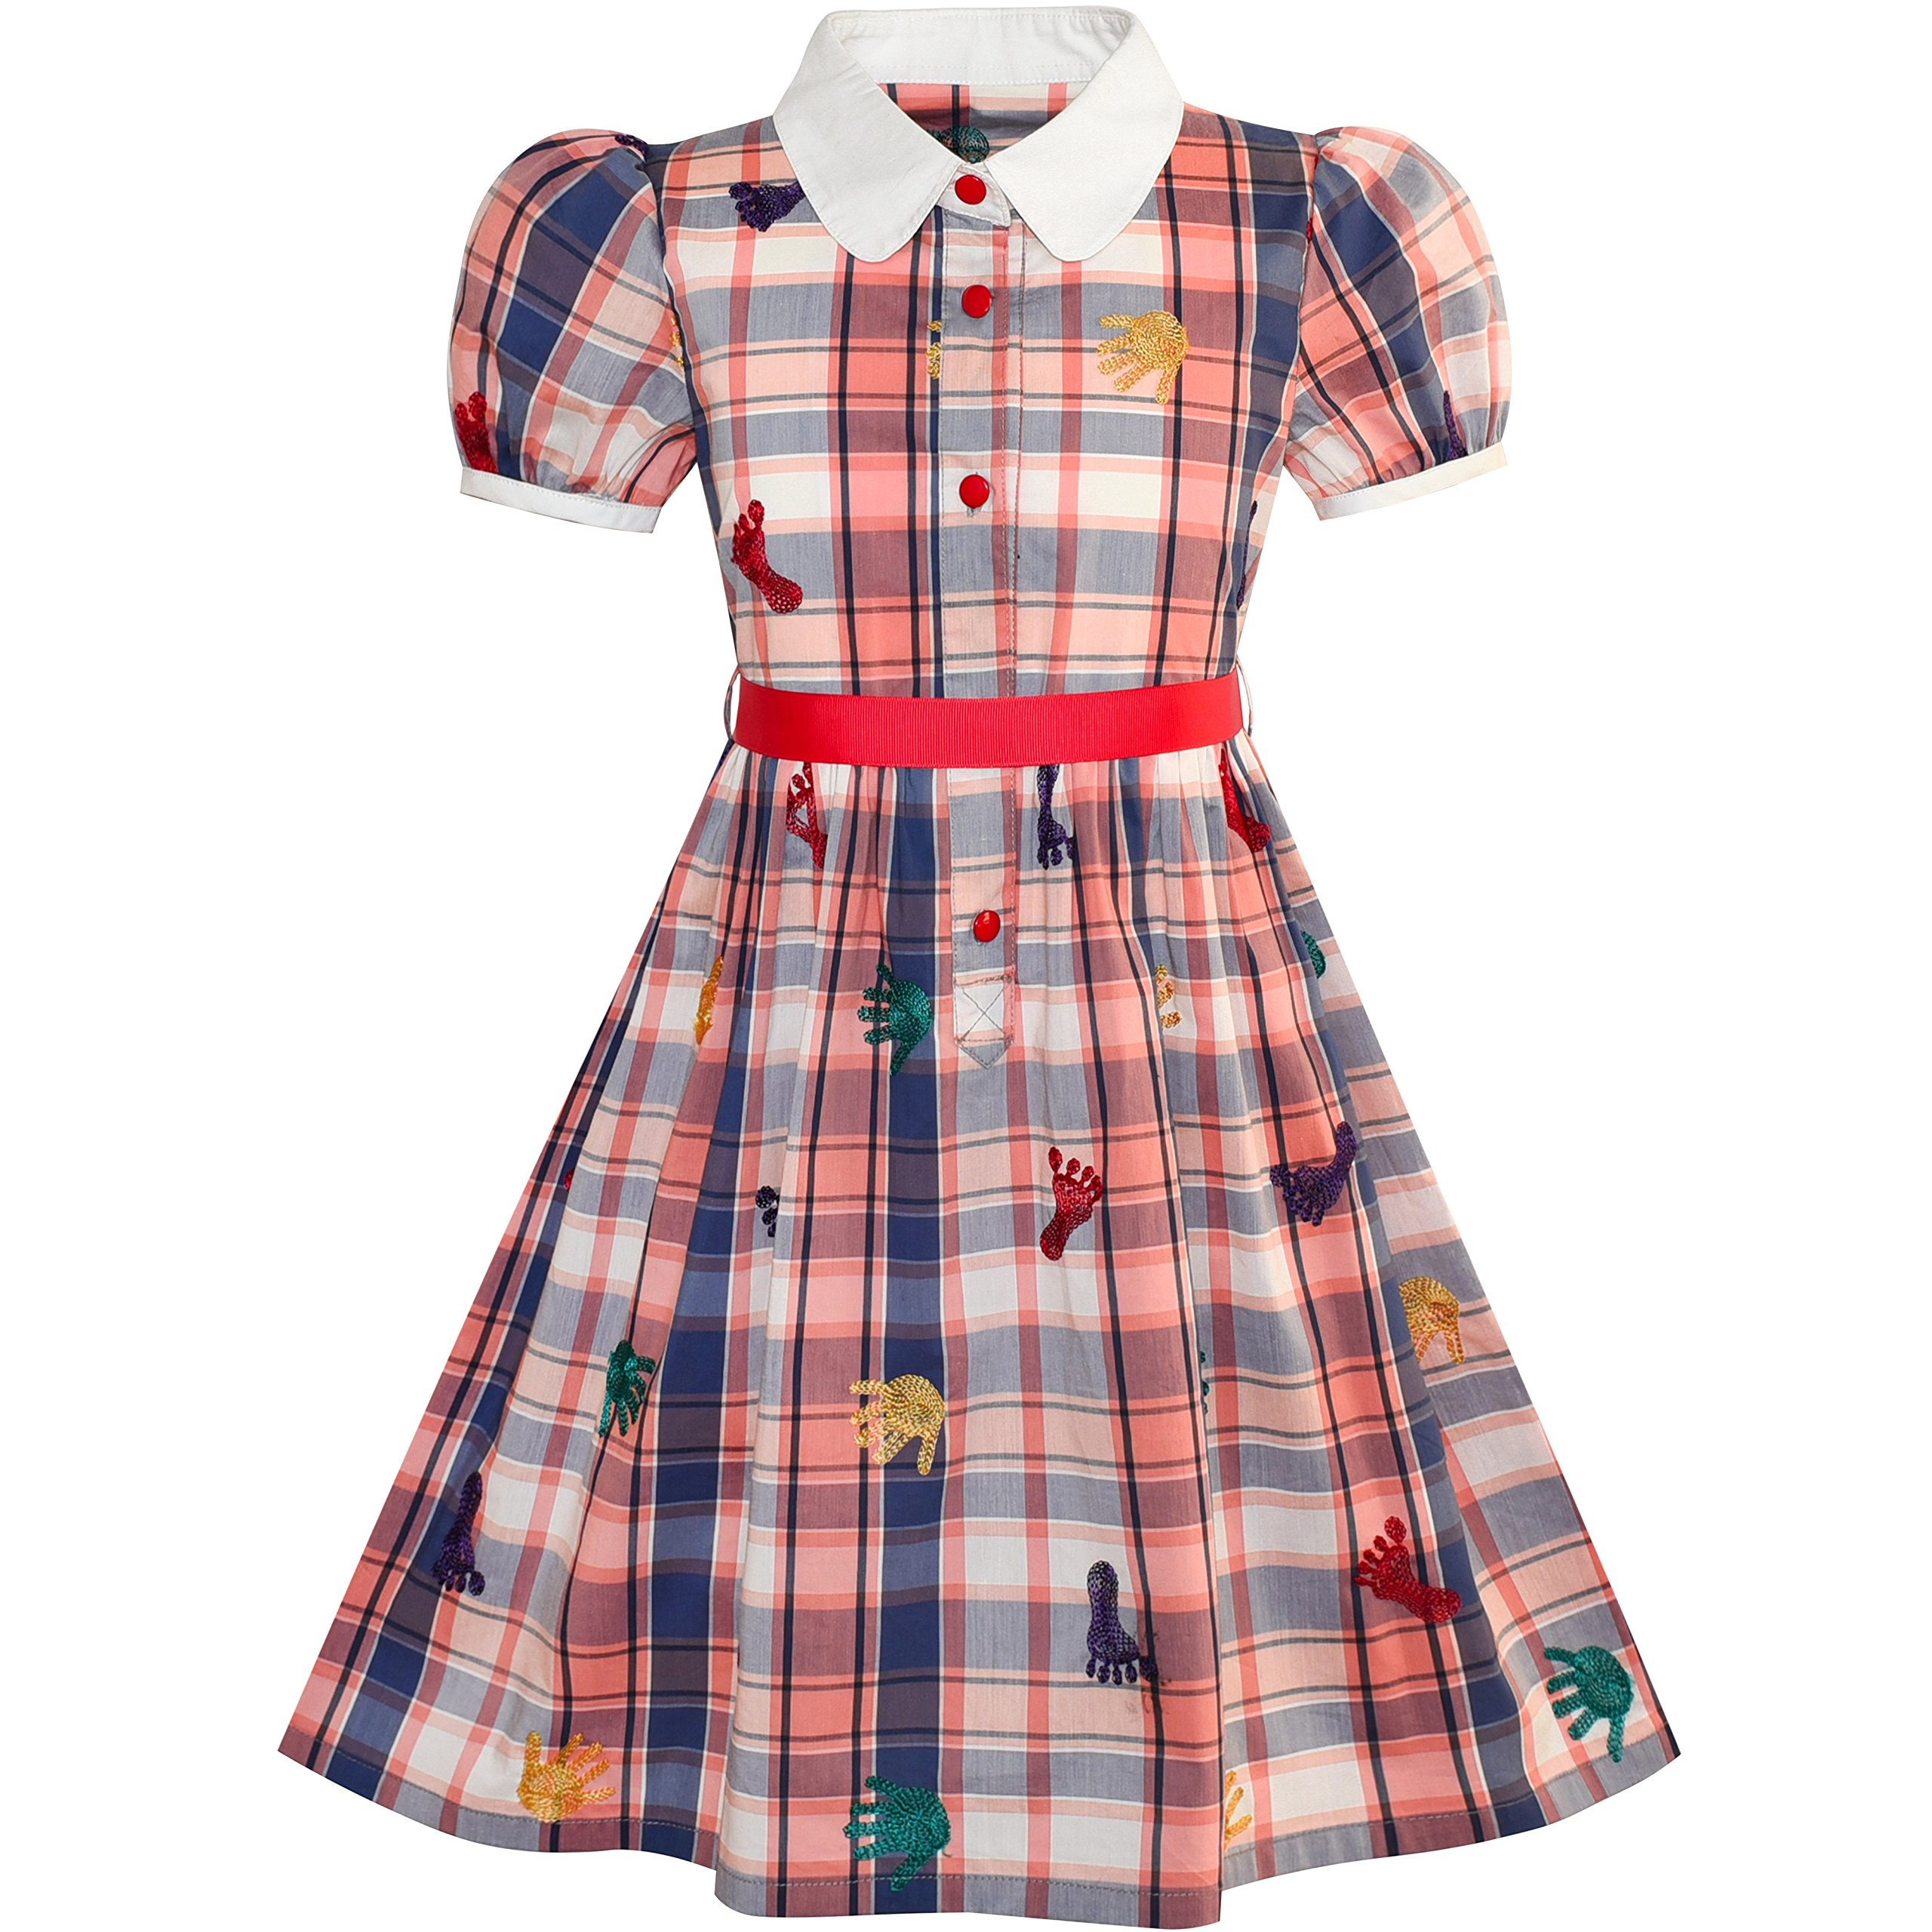 Sunny Fashion LW12 Girls Dress School Foot Hand Print Embroidery Gingham Size 5